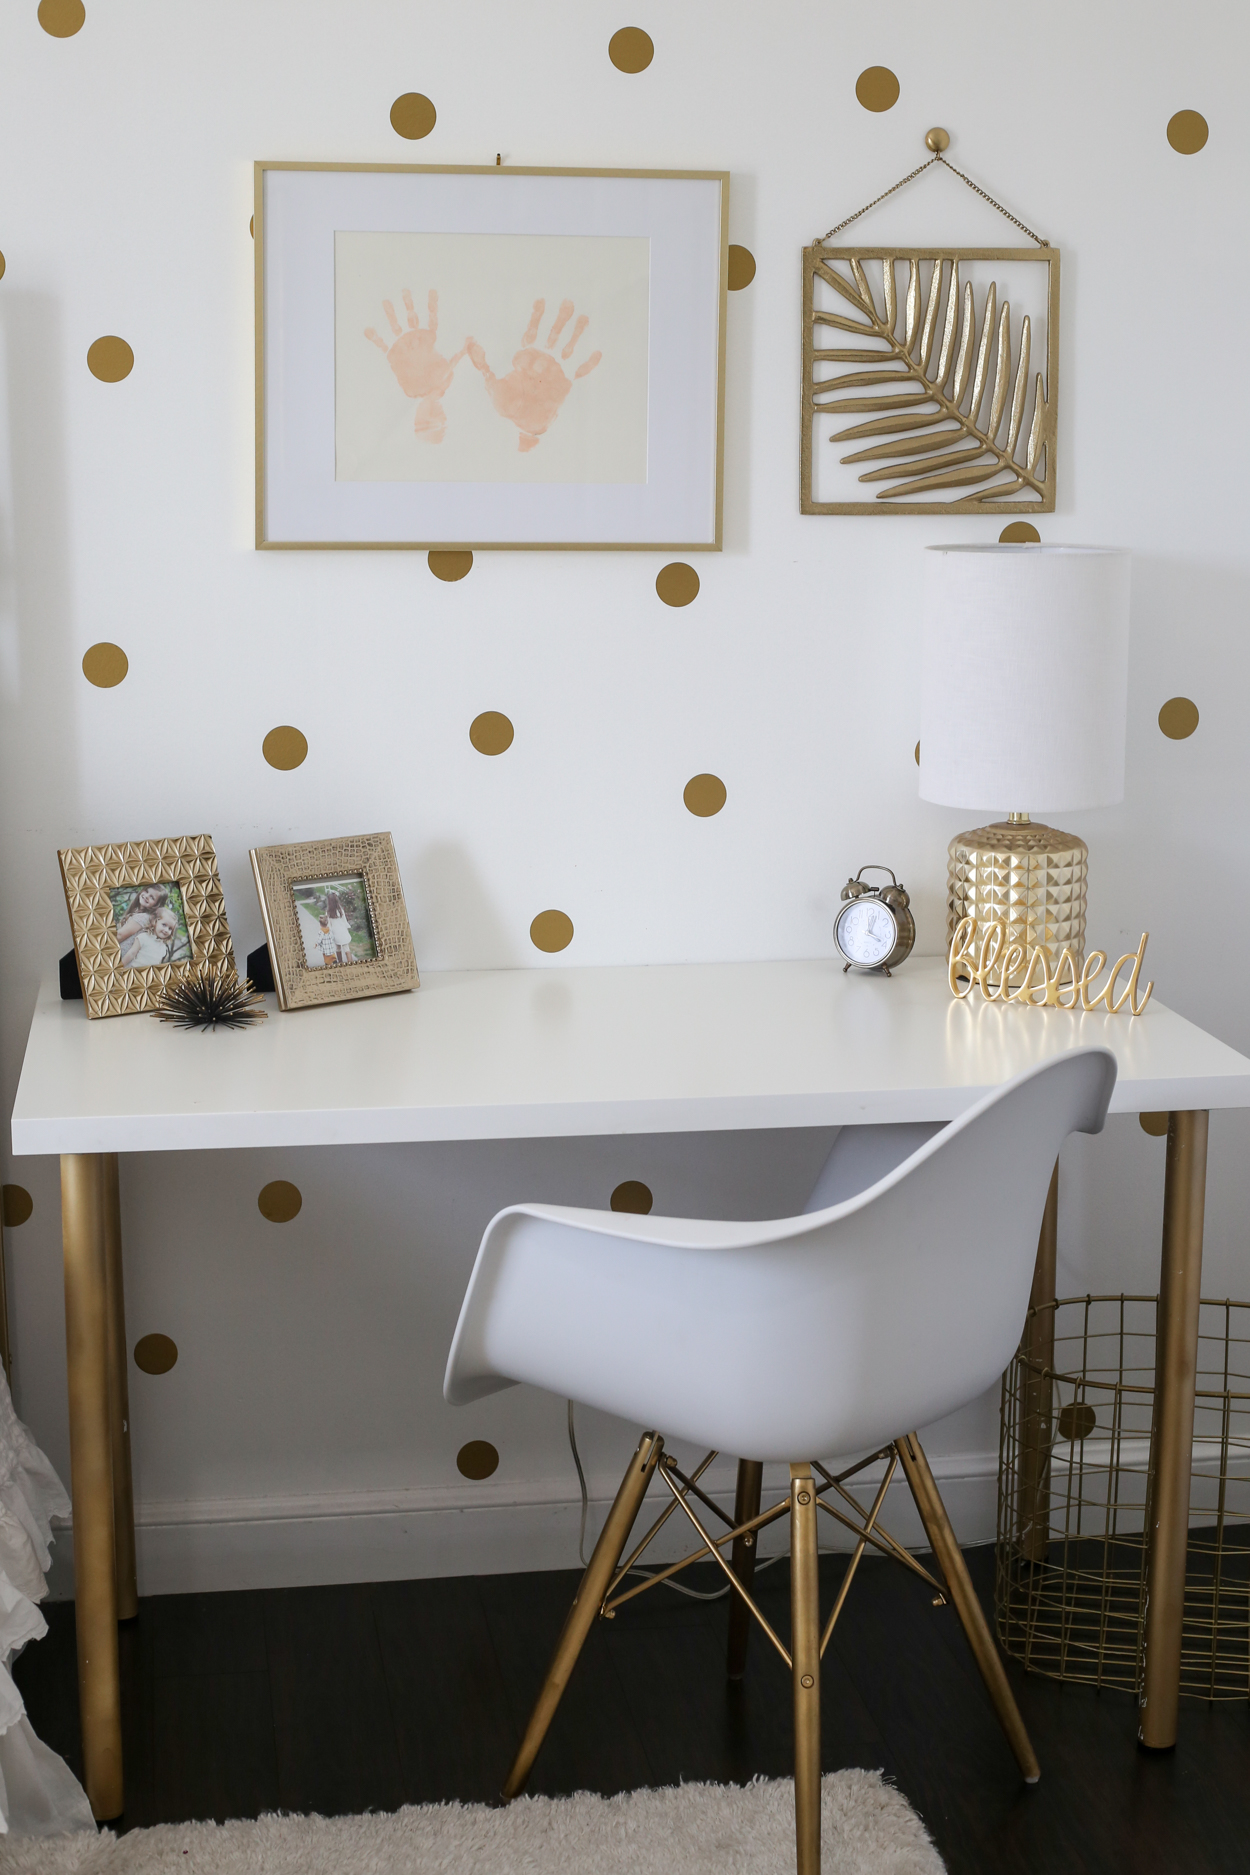 The desk station with golden accents and a white chair.